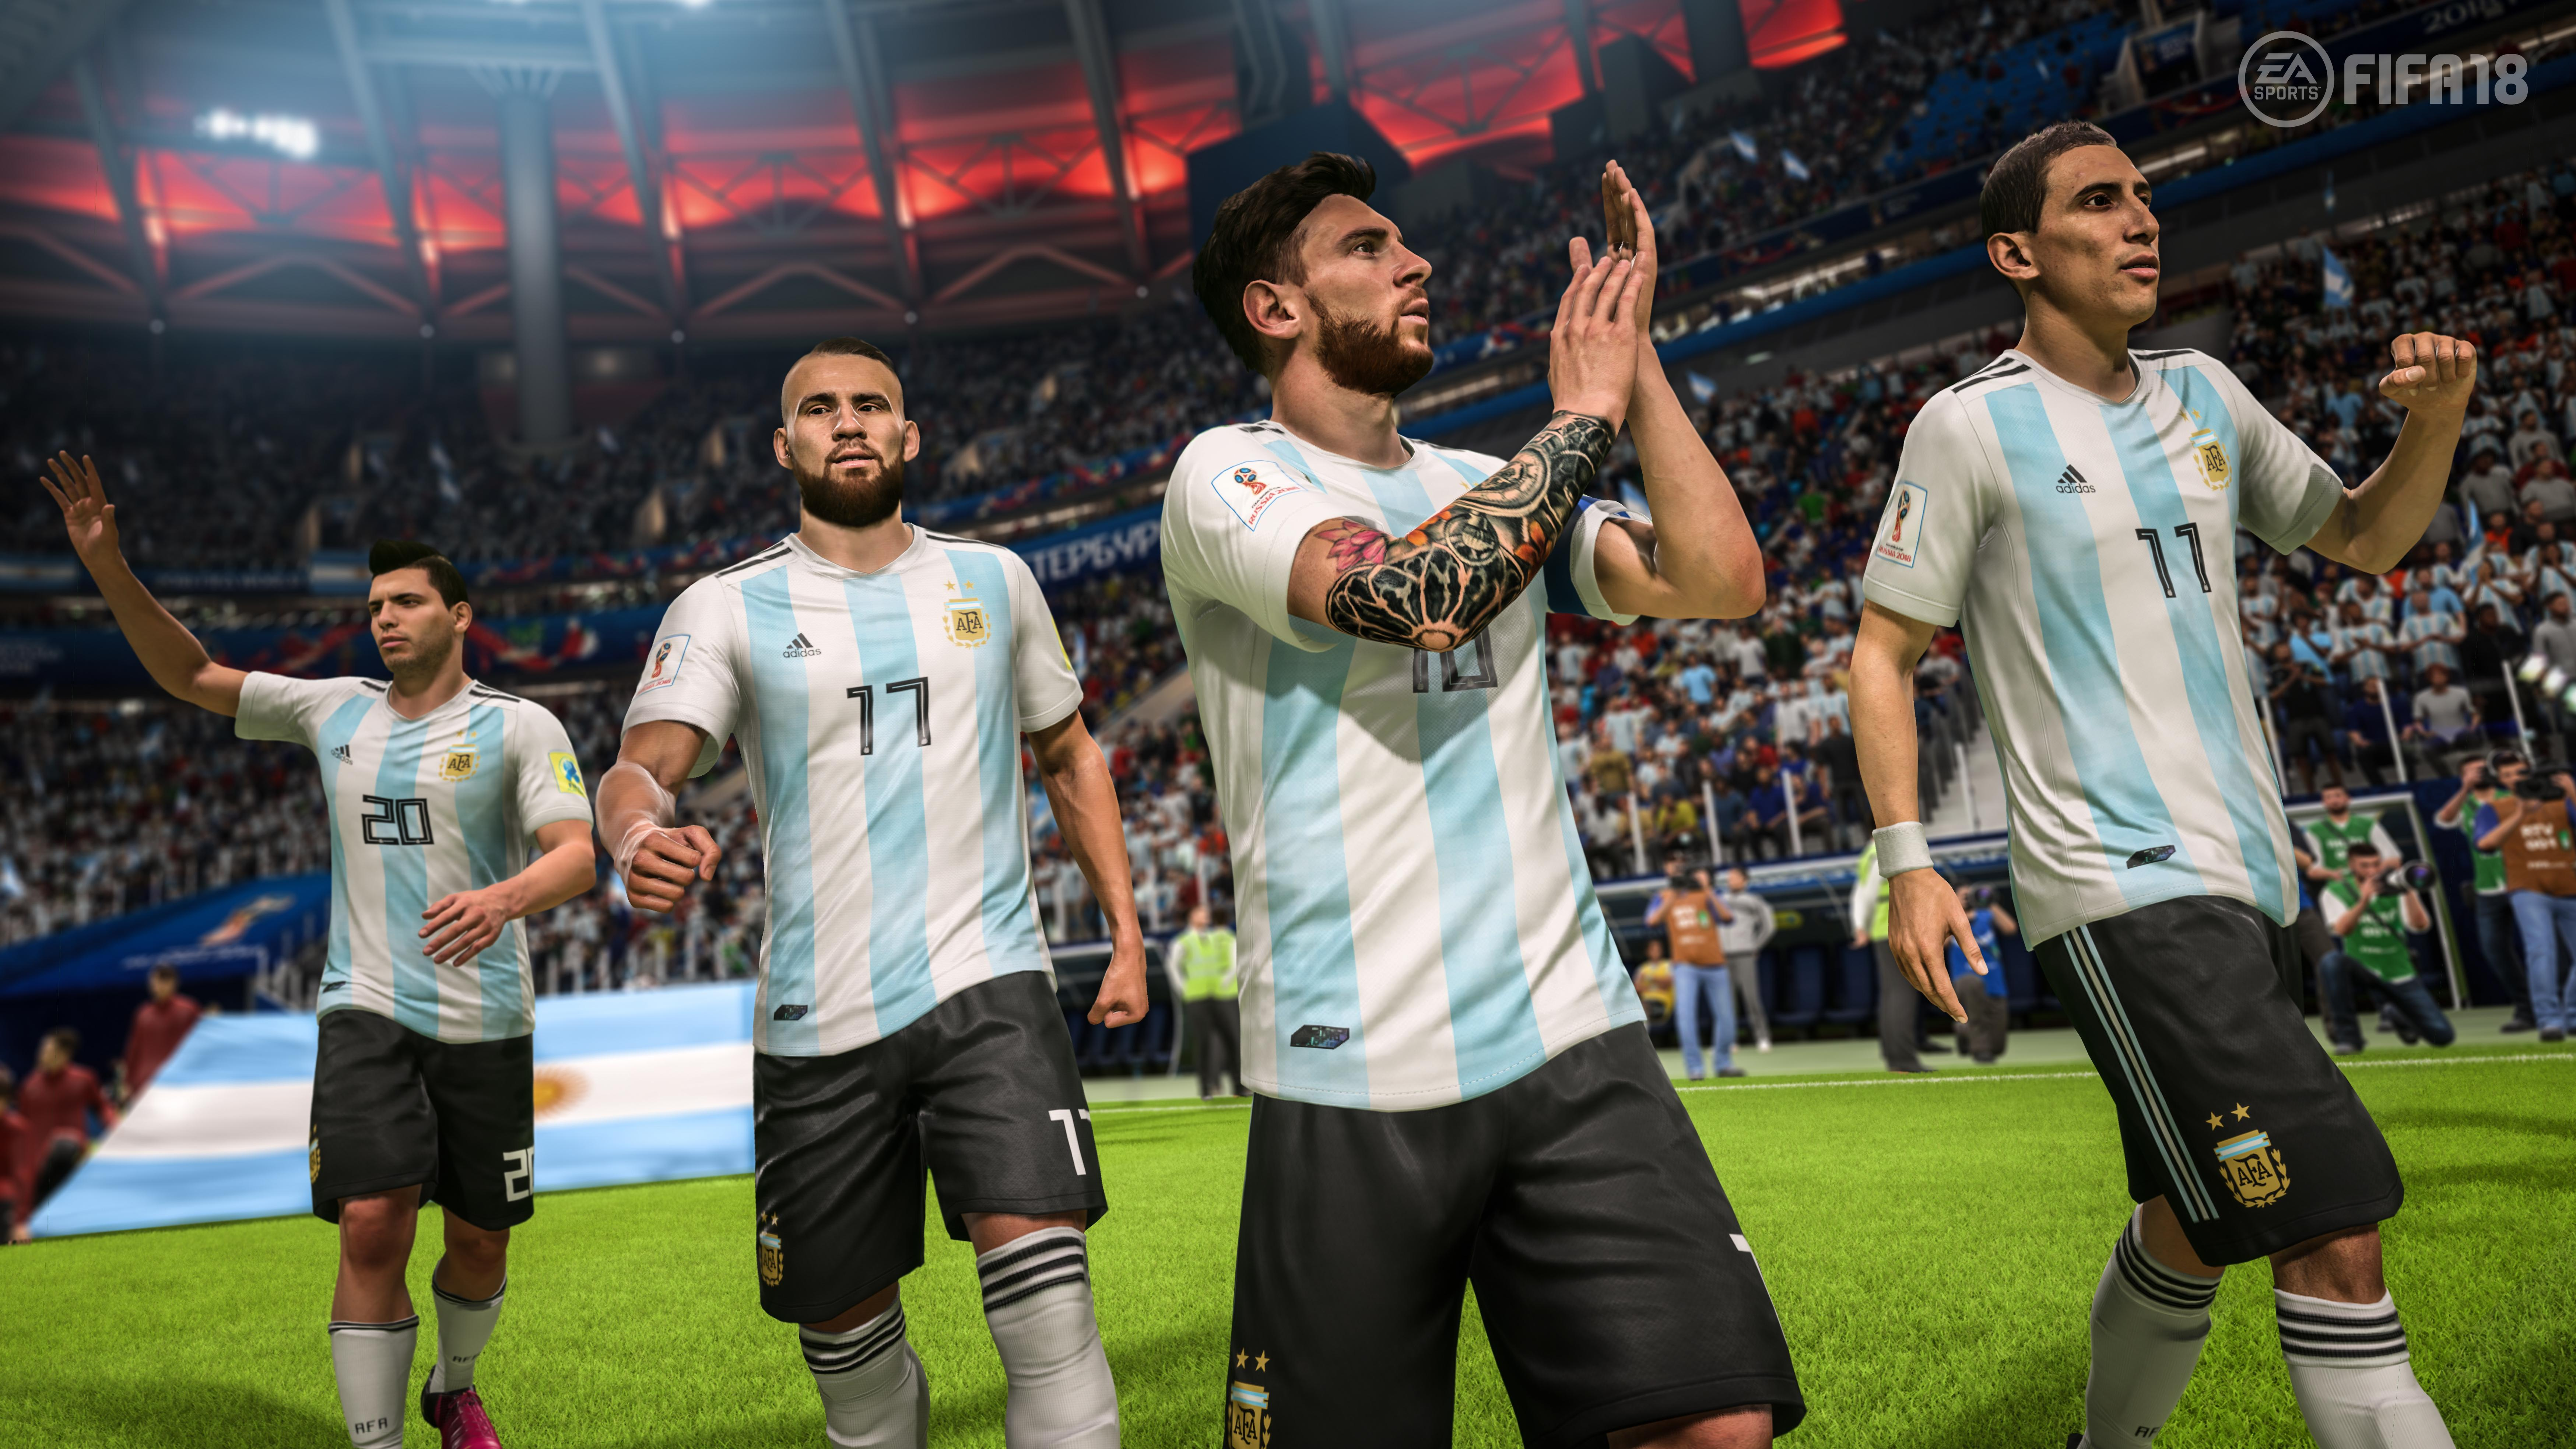 Frostbite made its name with FPS games – but has helped FIFA's presentation come on leaps and bounds